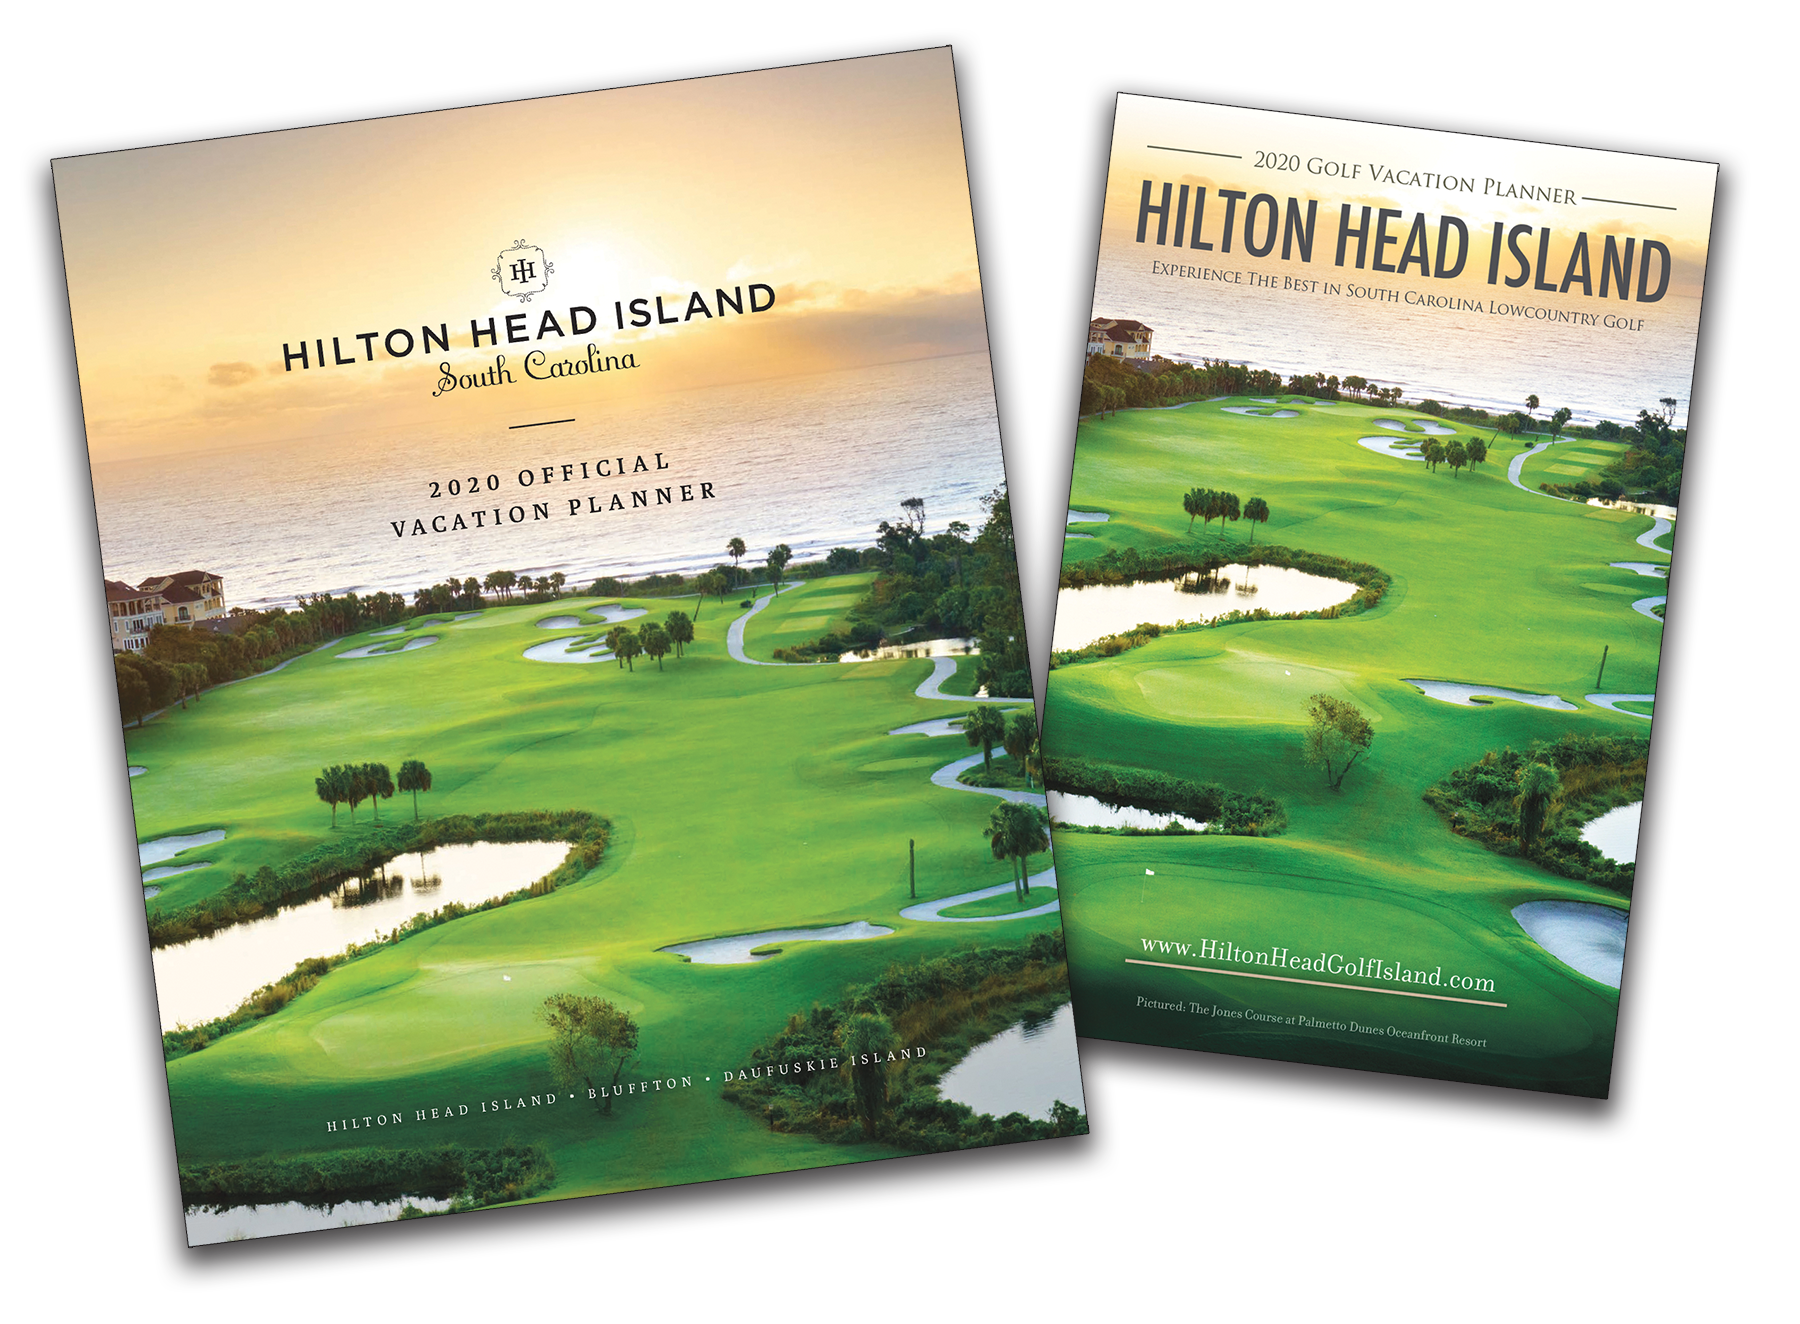 Hilton Head Island 2020 Vacation Planner